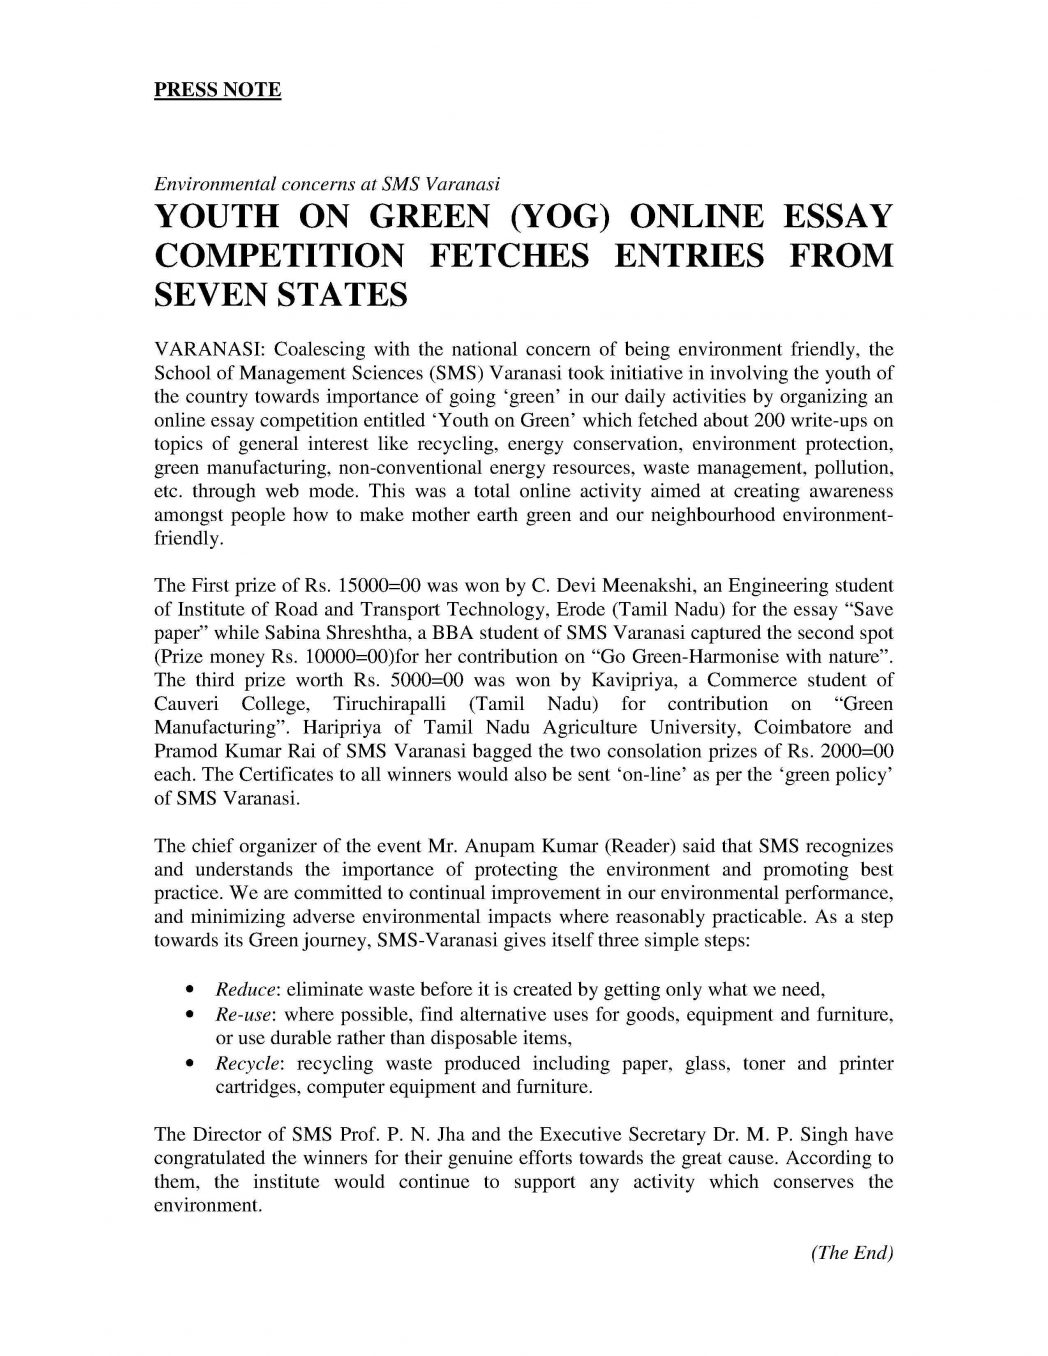 020 Best Essays For College Essay On Good Habits How Tot Application Online Yog Press Re About Yourself Examples Your Background Failure Prompt Off Hook 1048x1356 Example Amazing To Start An Ways With A Question Introduction Quote Apa Full